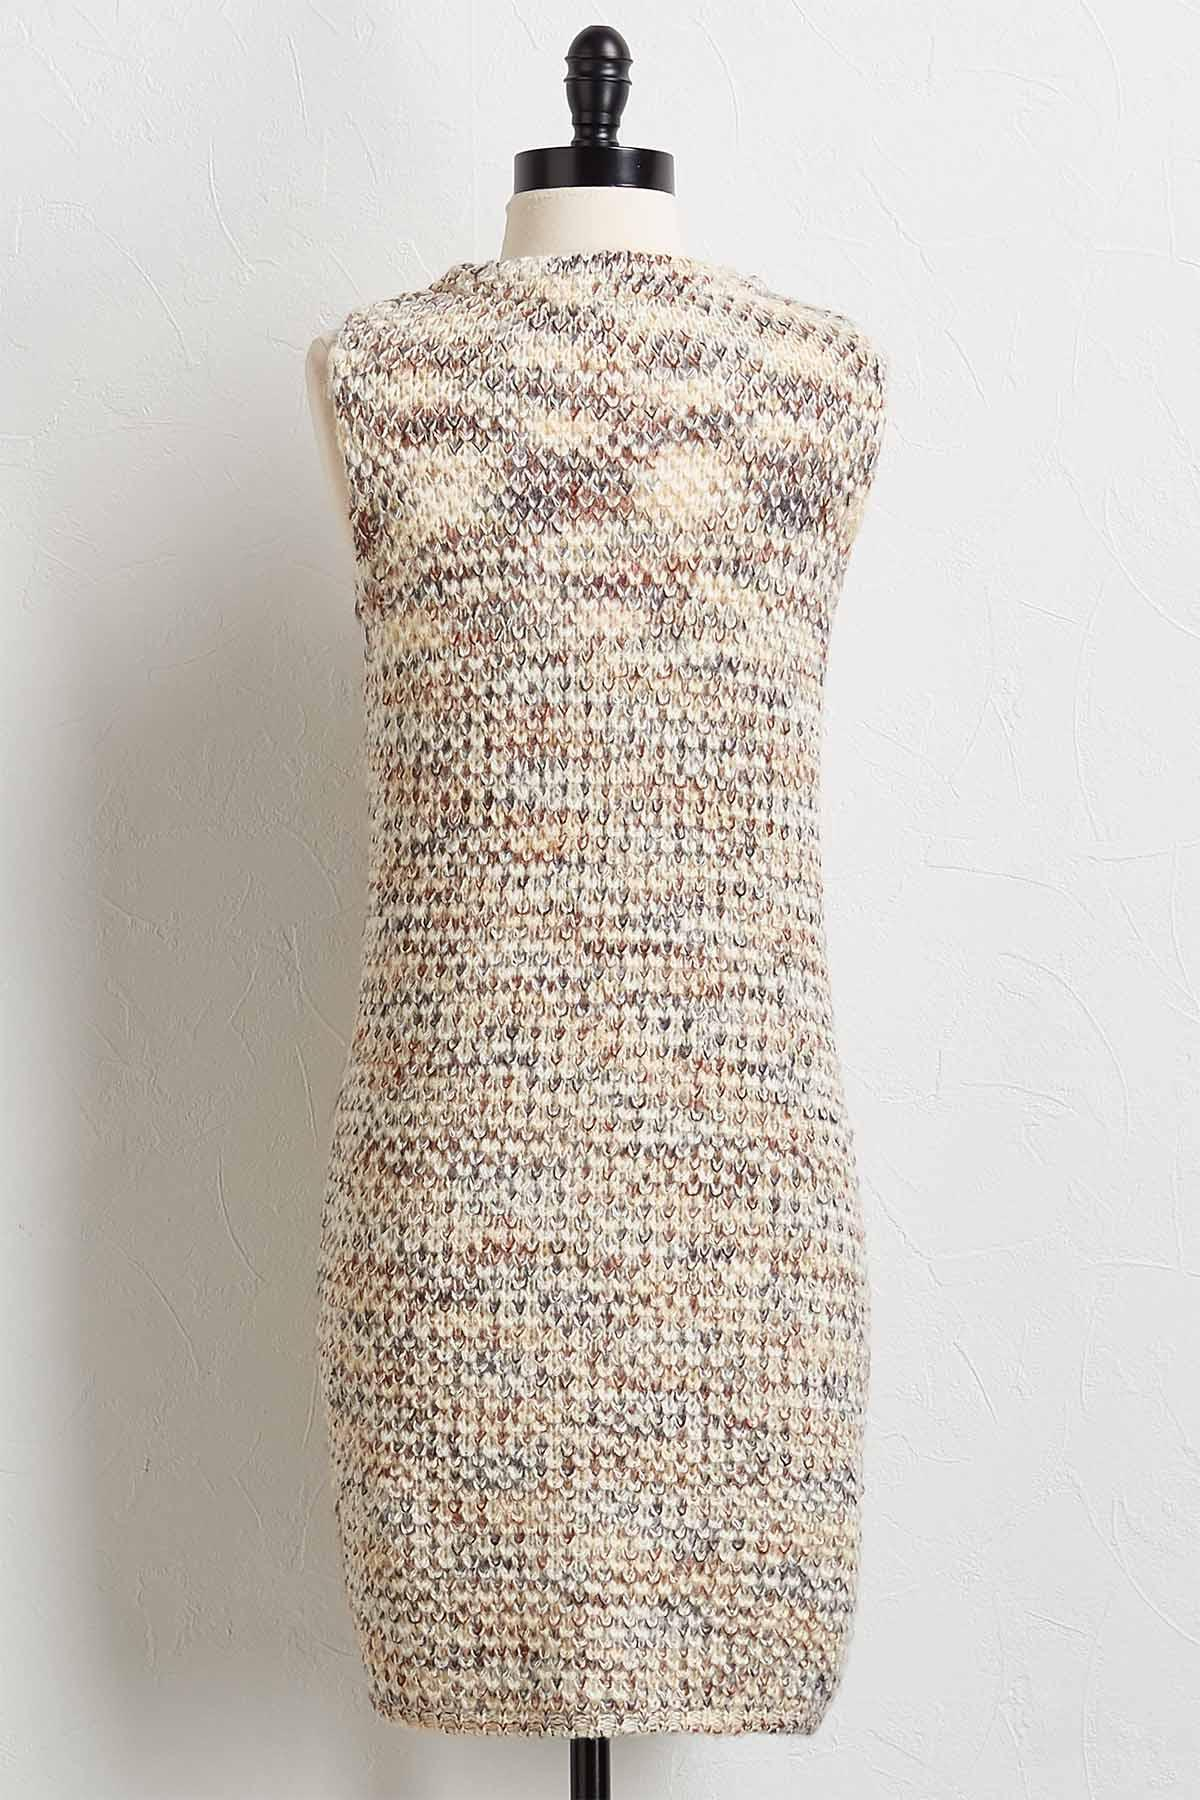 Speckled Sweater Vest